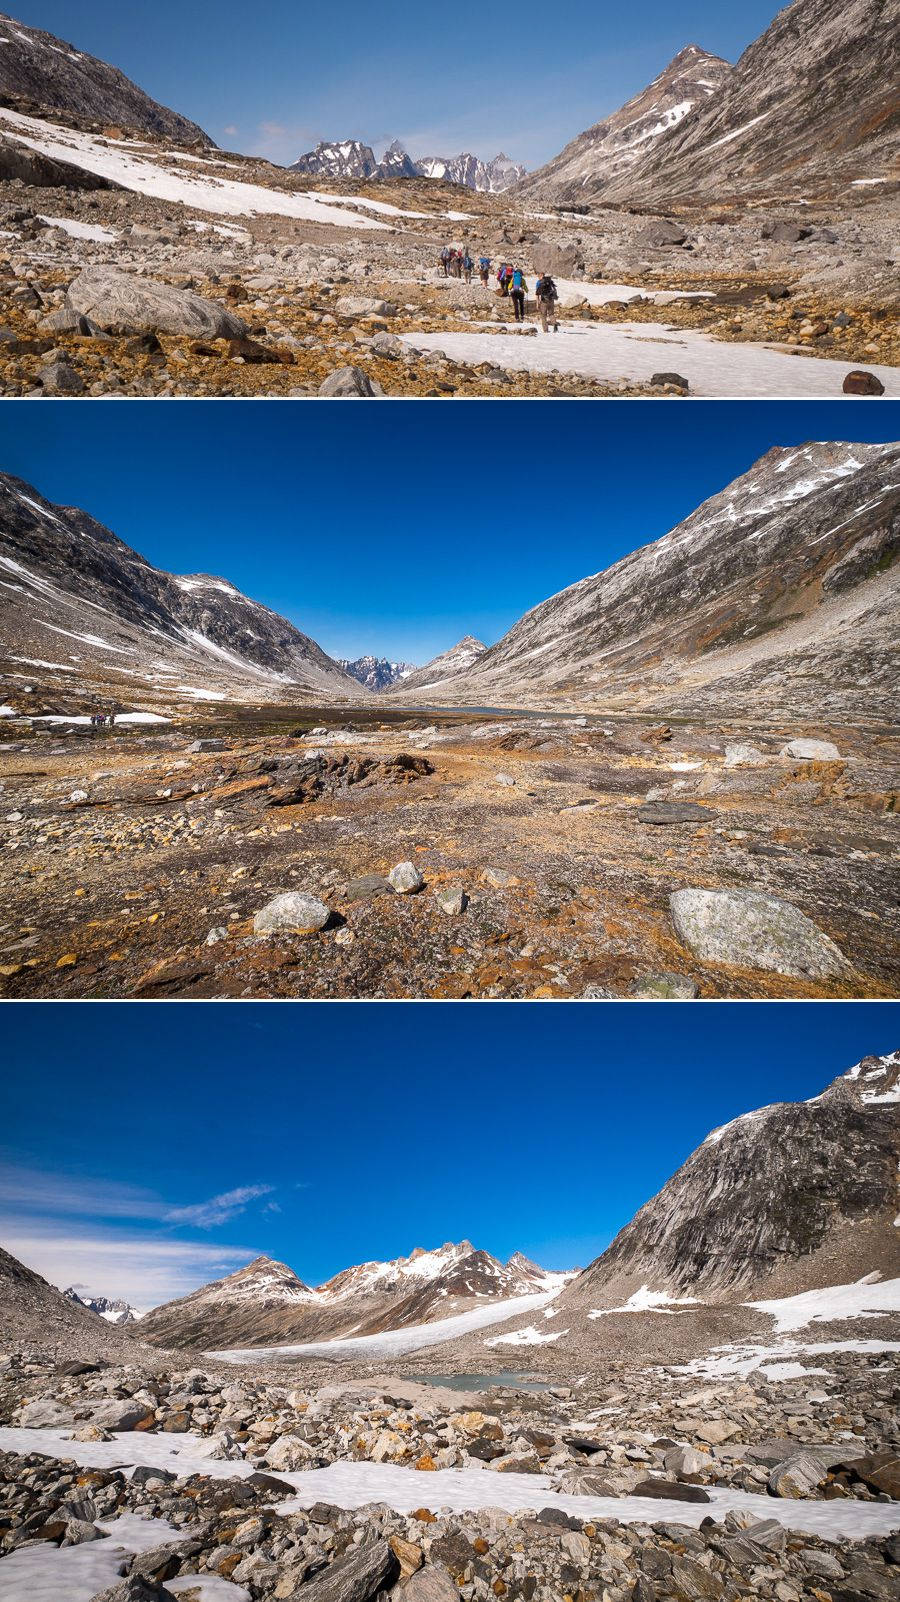 Different views as we crossed the pass from the Tunup Kua Valley to the Tasiilap Nua Valley